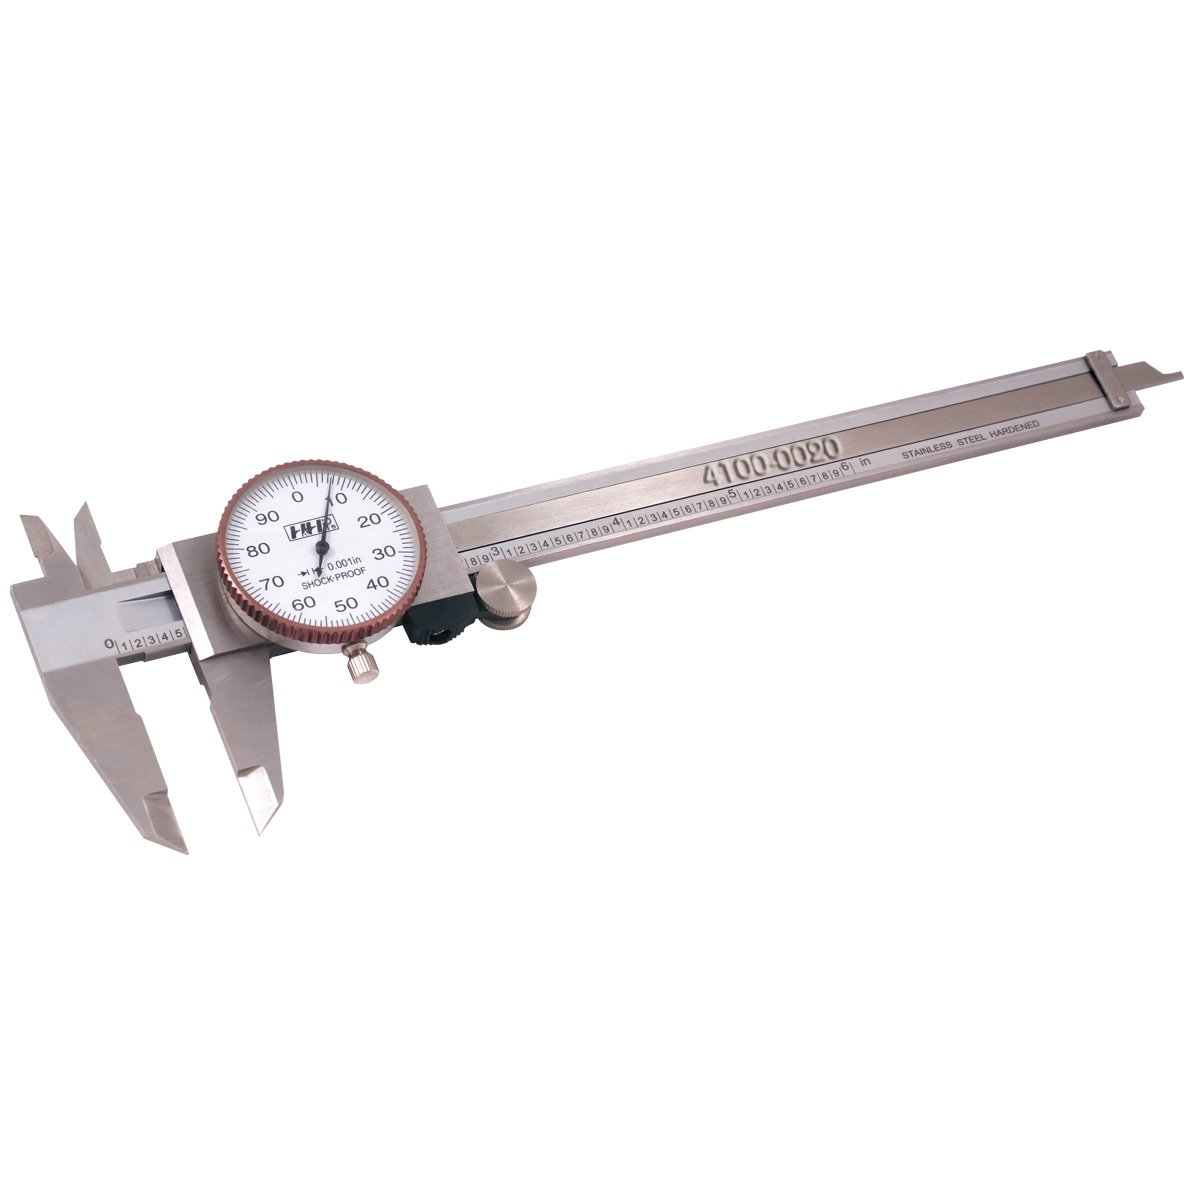 Pro Series by HHIP 4100-0020 Pro-Quality Dial Caliper, 6' 6